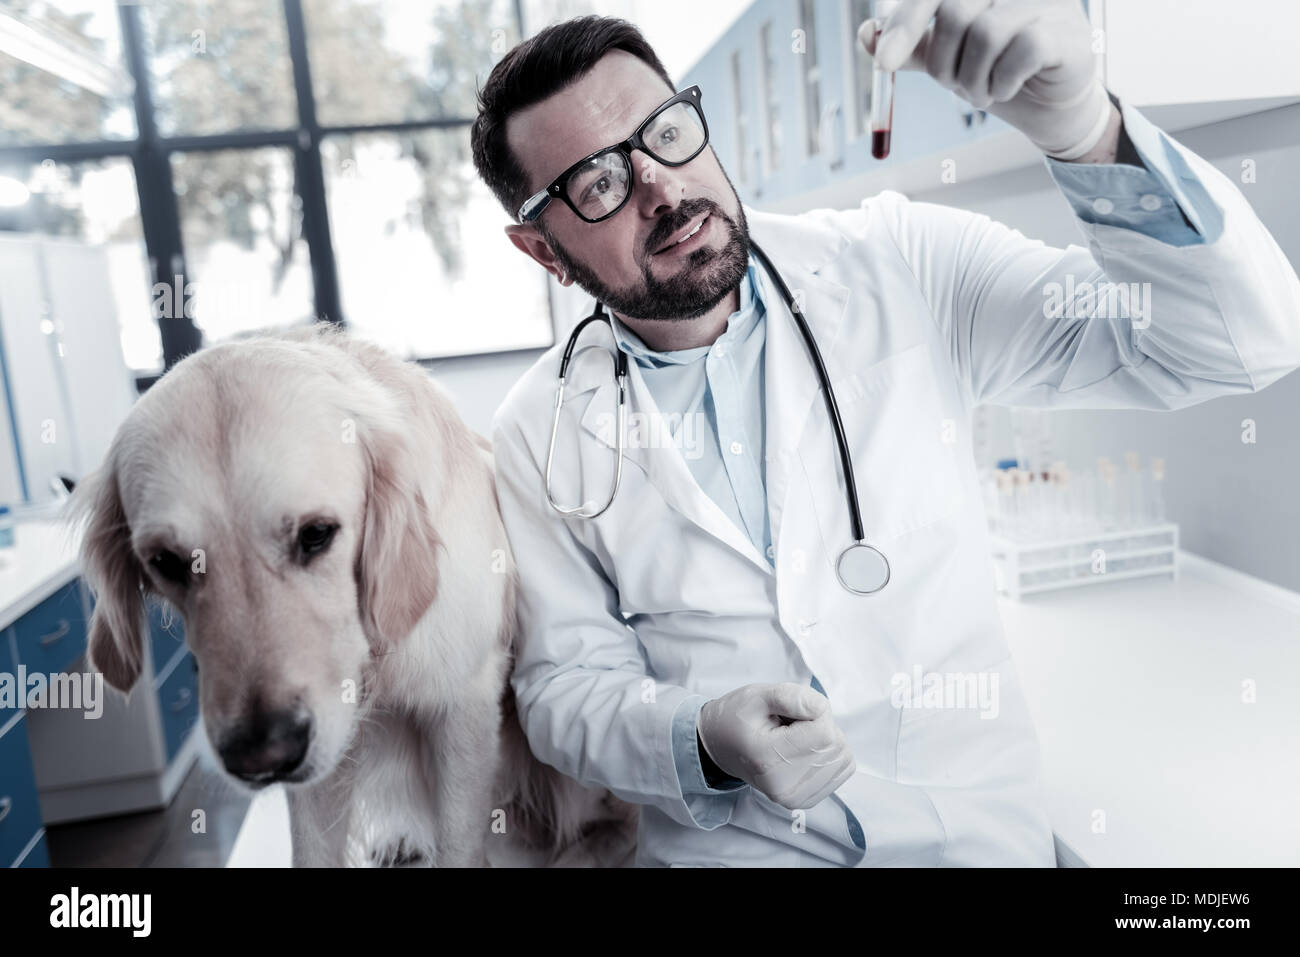 Smart skillful doctor looking at the blood sample - Stock Image